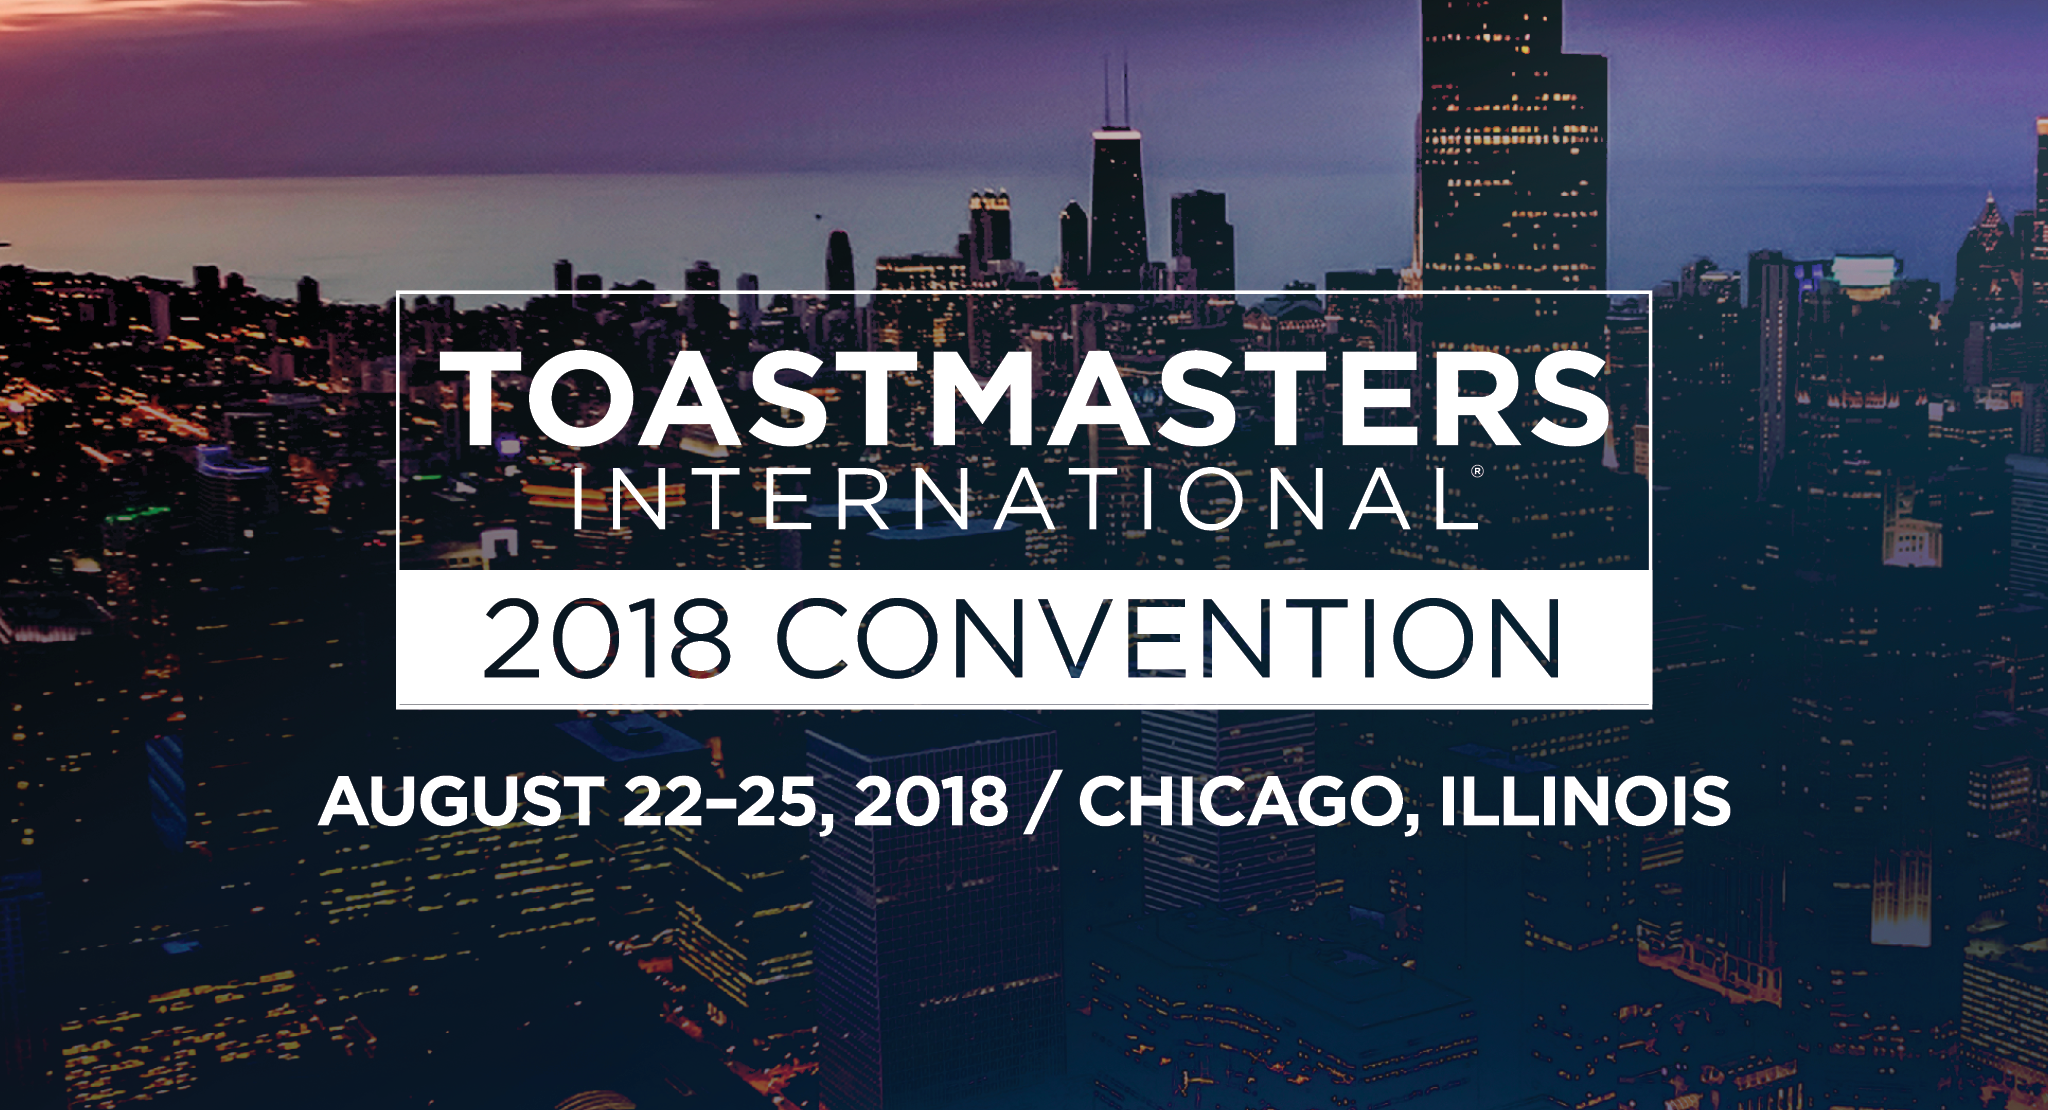 2018 Toastmasters International Convention